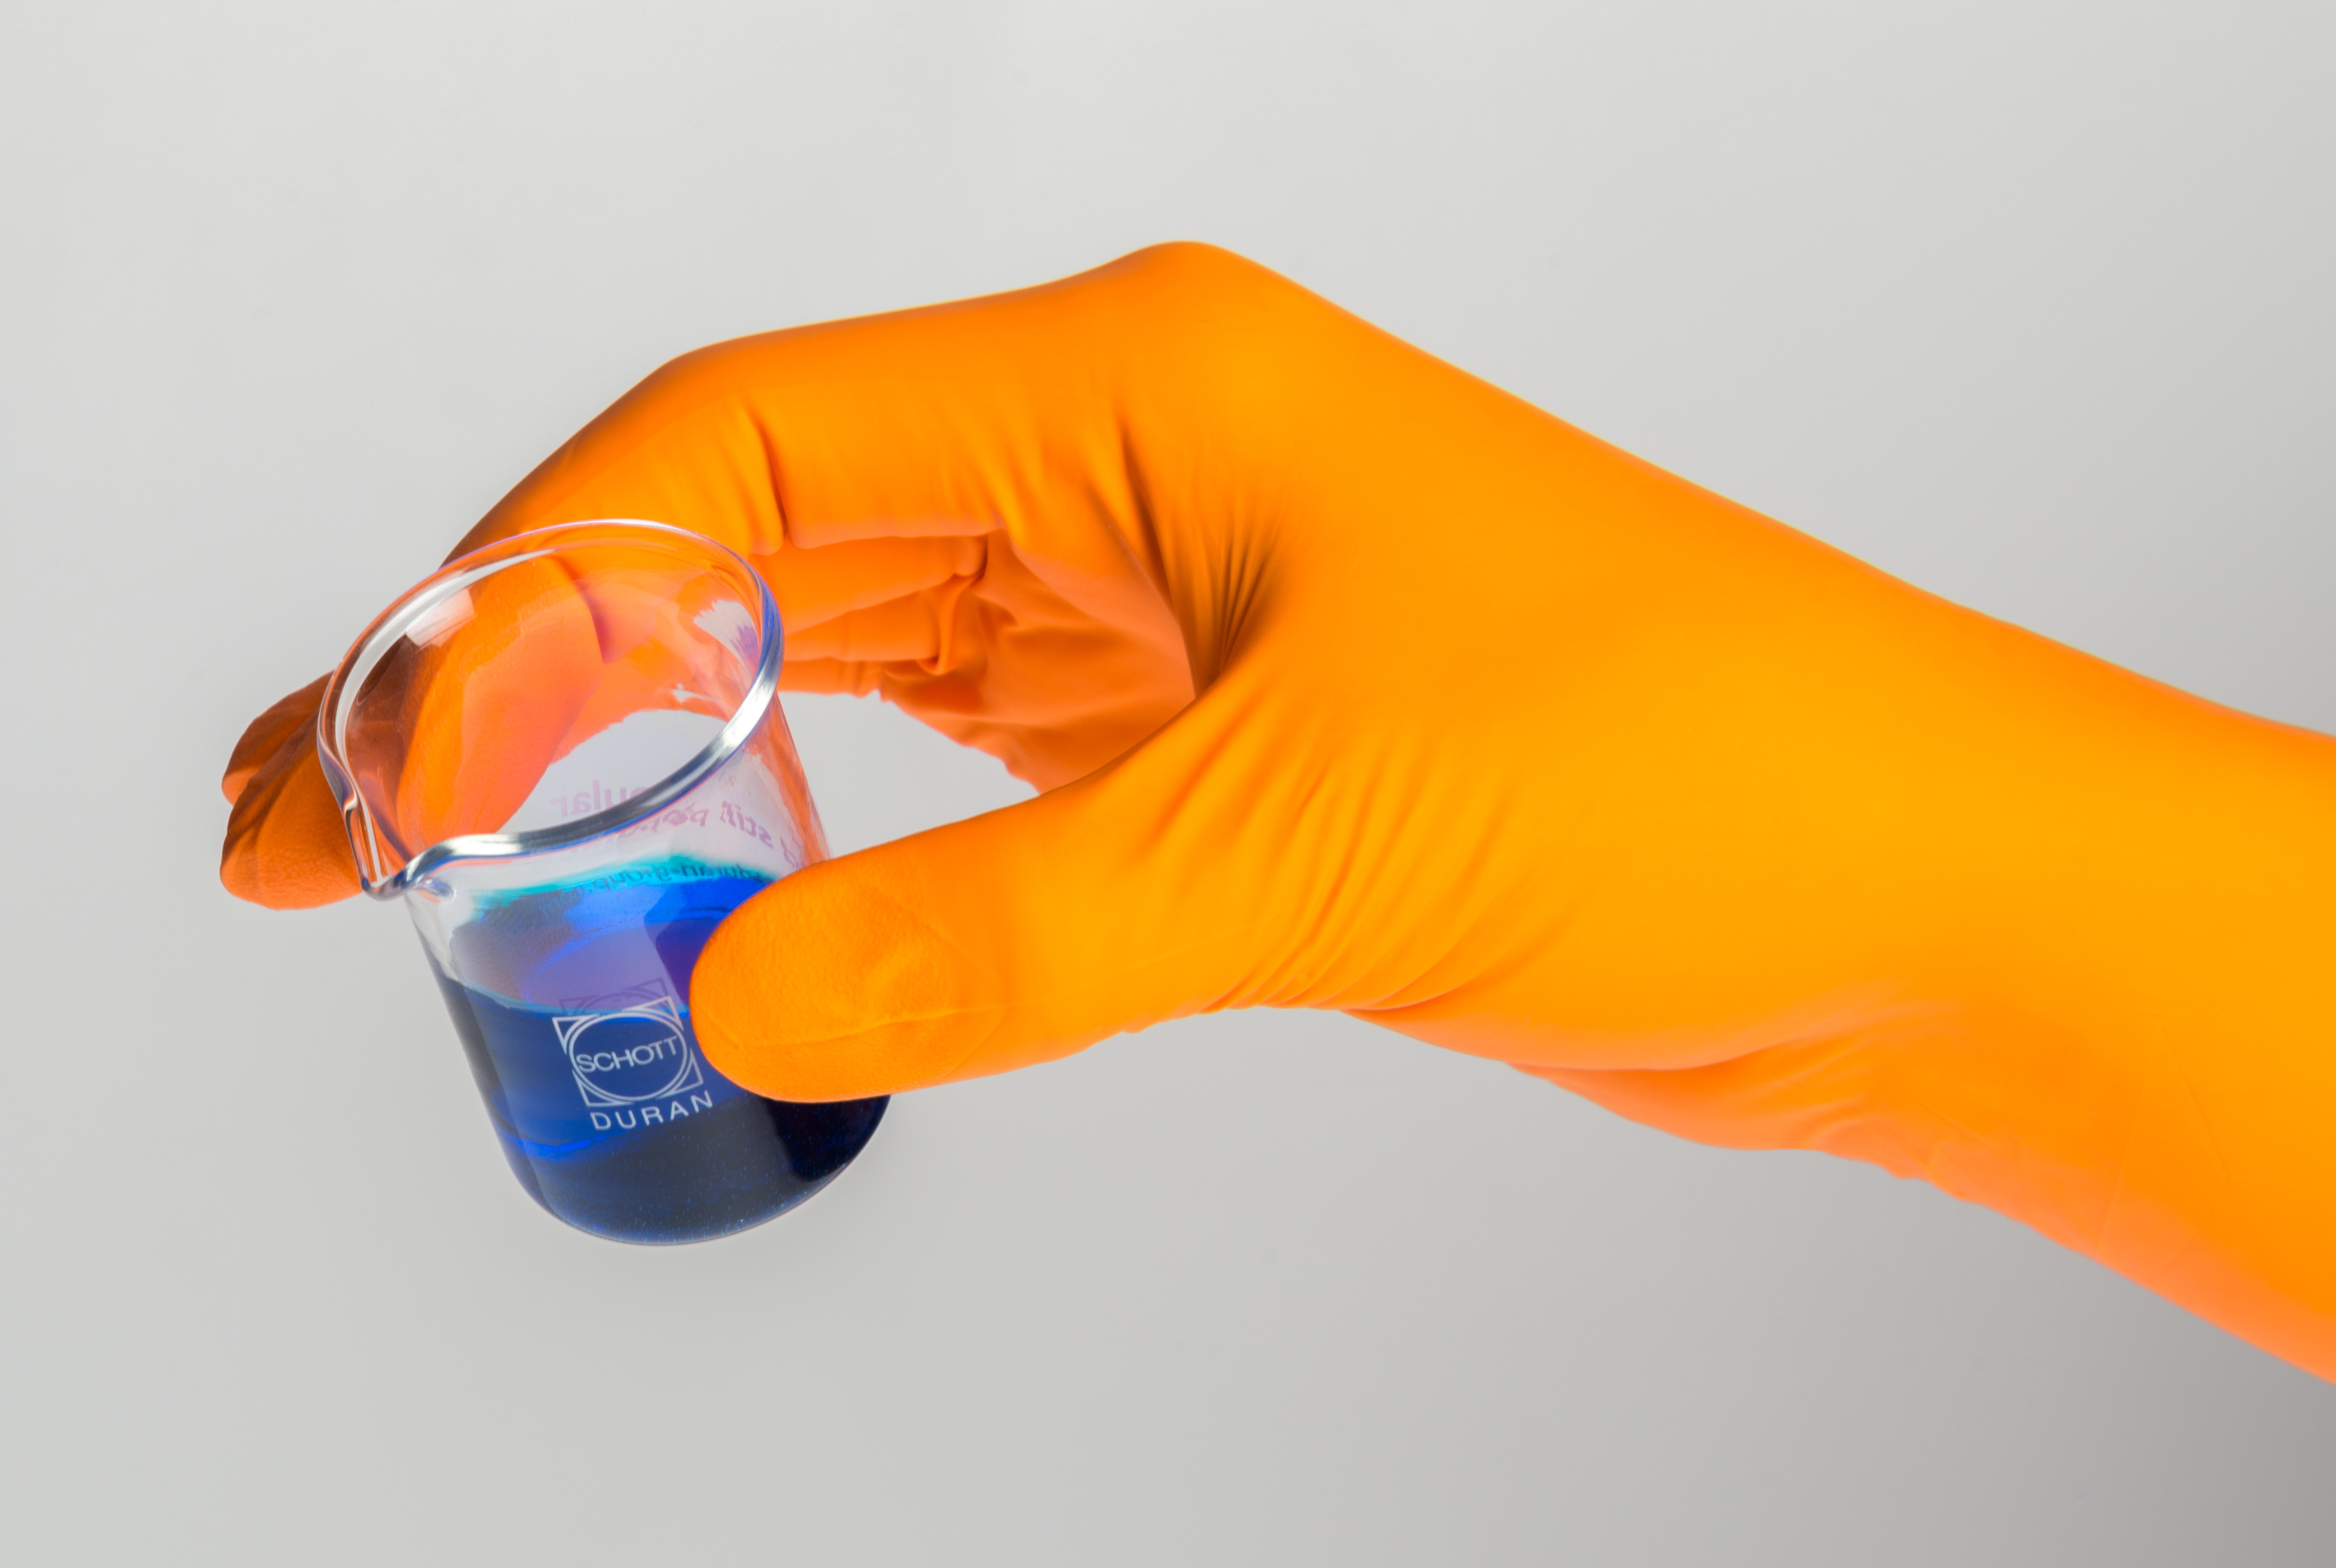 SHIELDskin-ORANGE-NITRILE-300-Sterile-Gloves-with-twinSHIELD-Technology-Small-Individually-Wrapped-160-Pairs